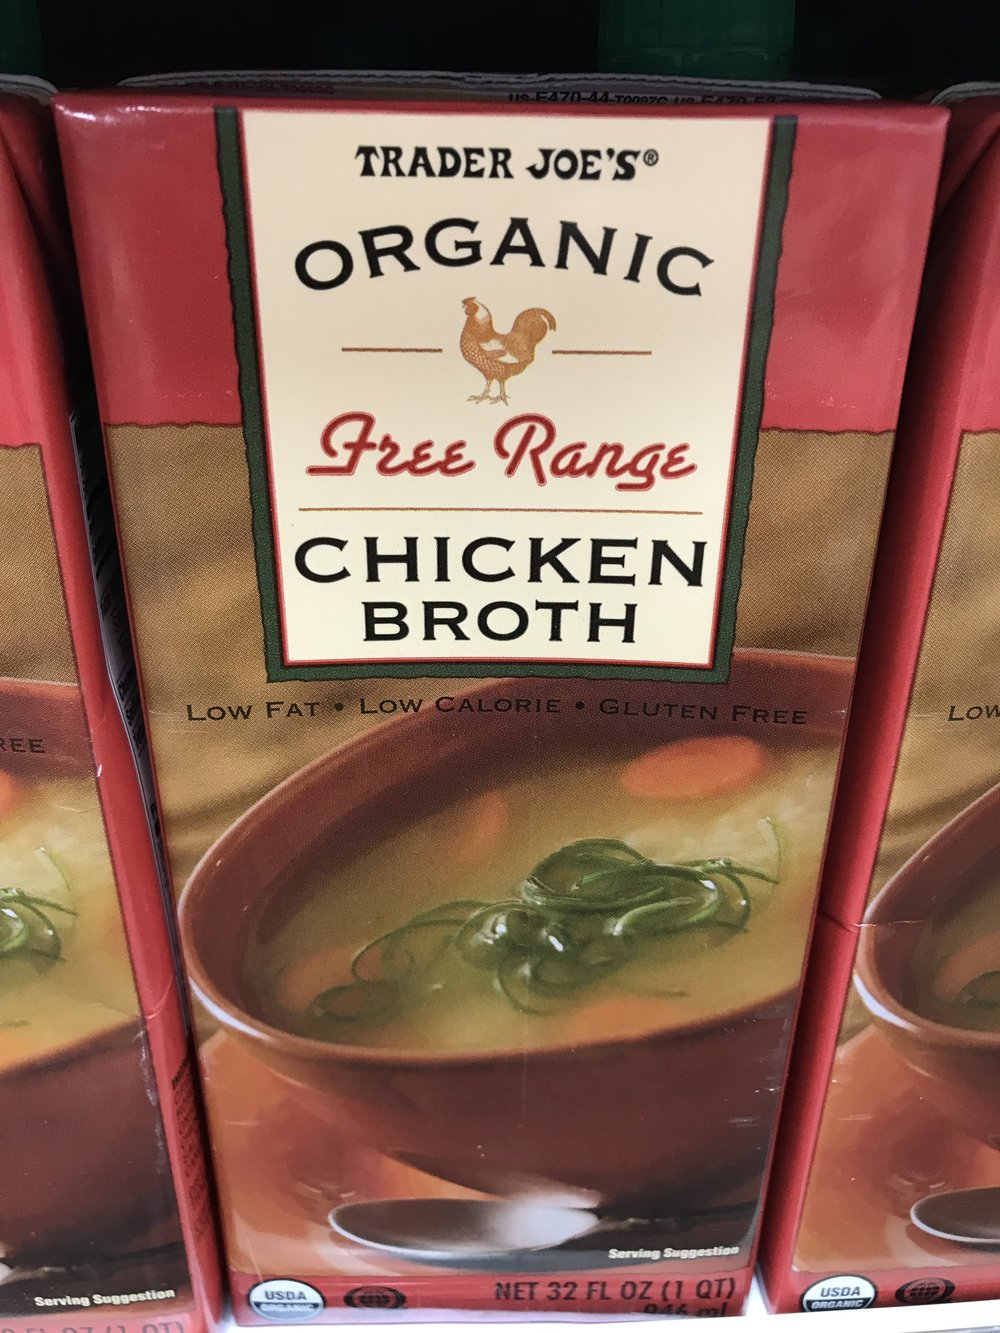 Trader Joe's Organic Free Range Chicken Broth doesn't contain soy!